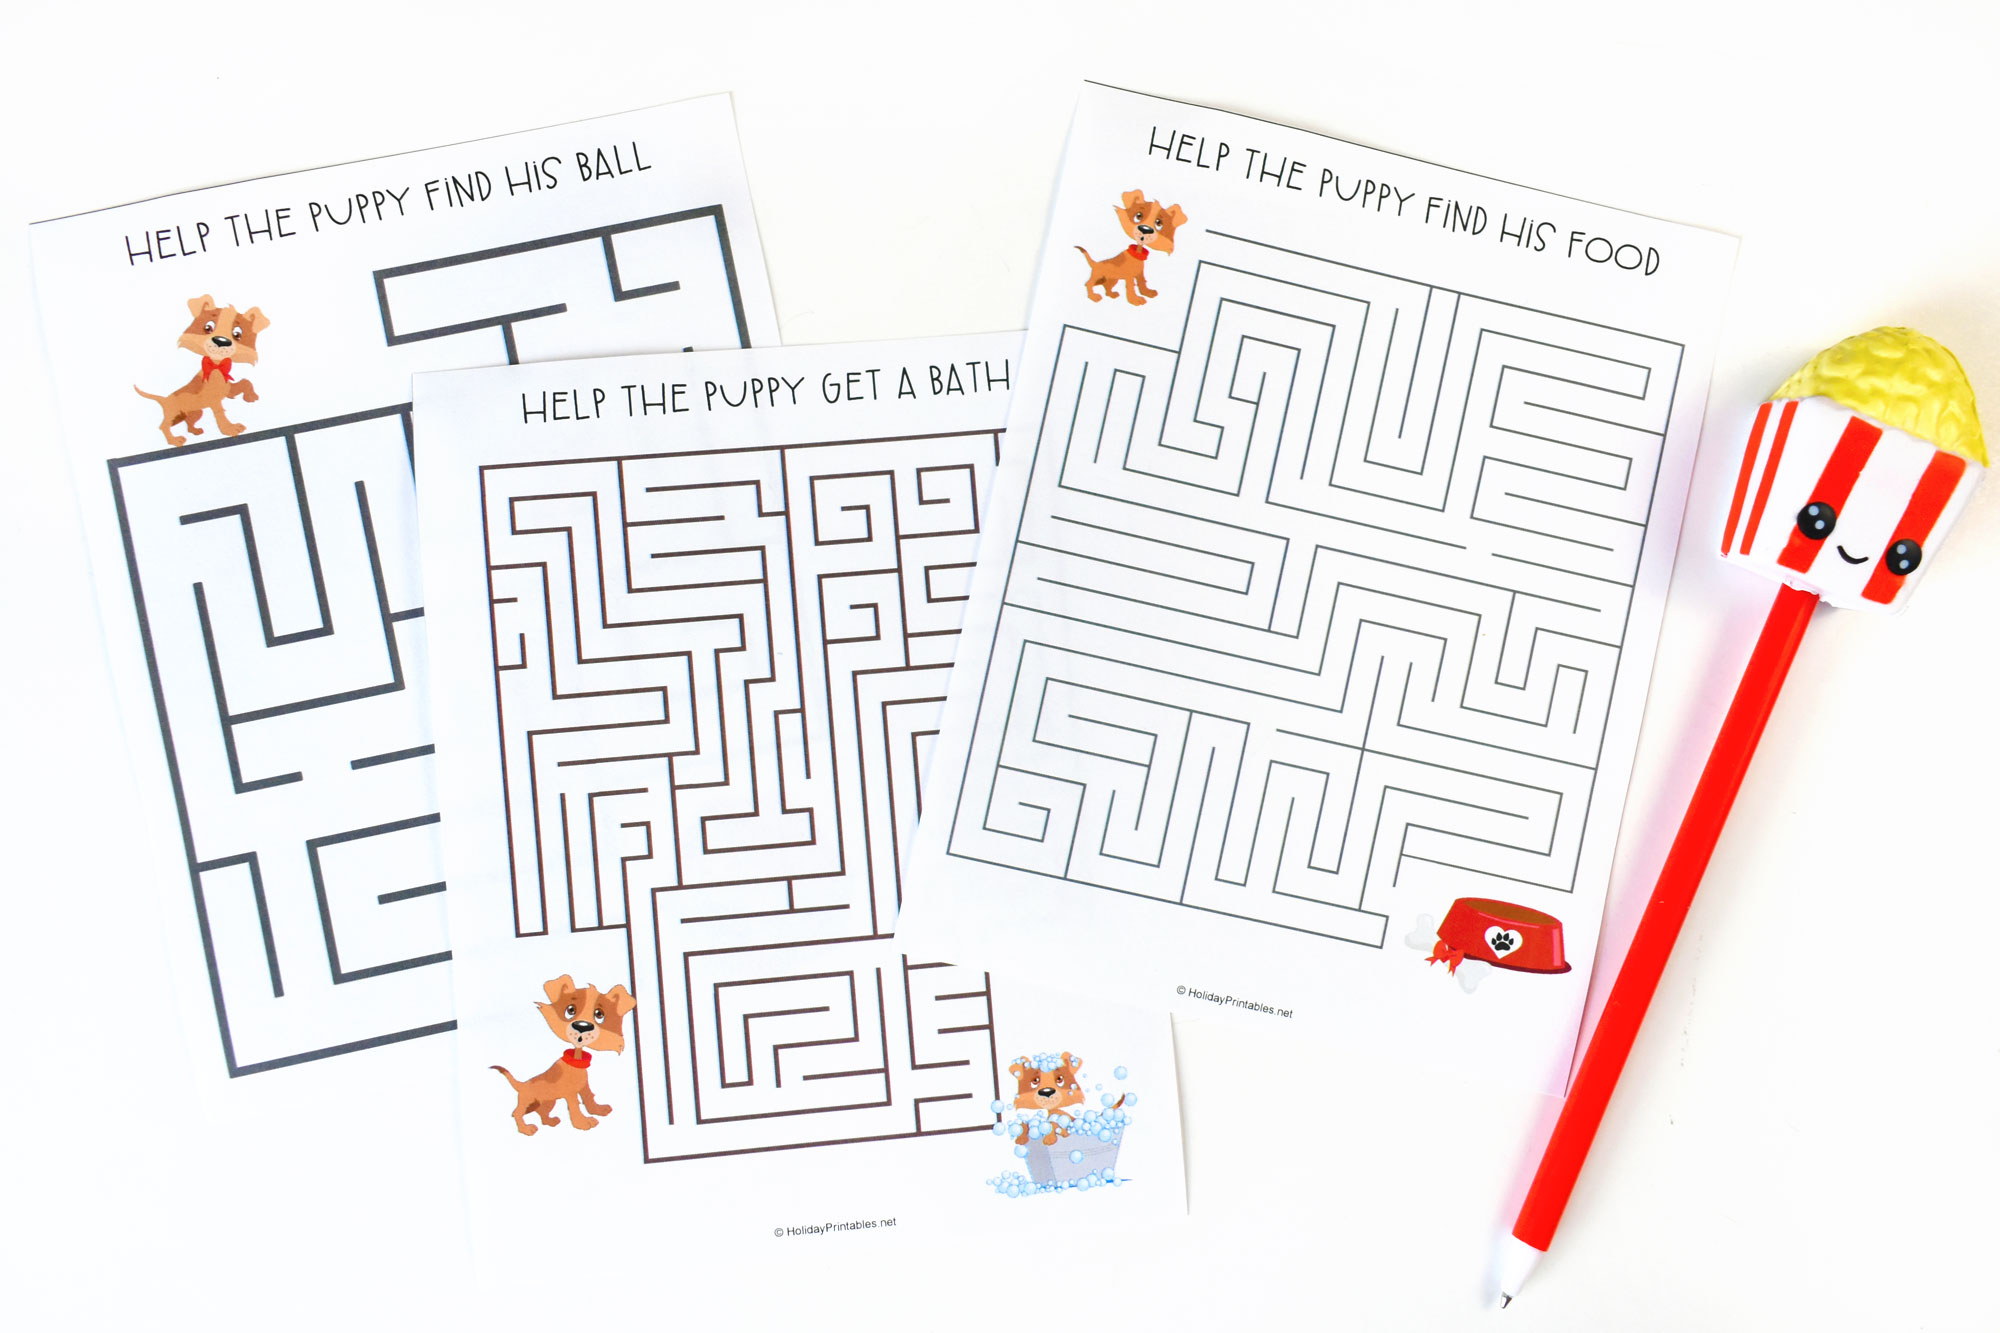 Puppy Mazes Printable Pages for Naitional Puppy Day | HolidayPrintables.net #puppies #nationalpuppyday #printables #homeschoolprintable #printablesforkids #holidayprintables #weloveprintables